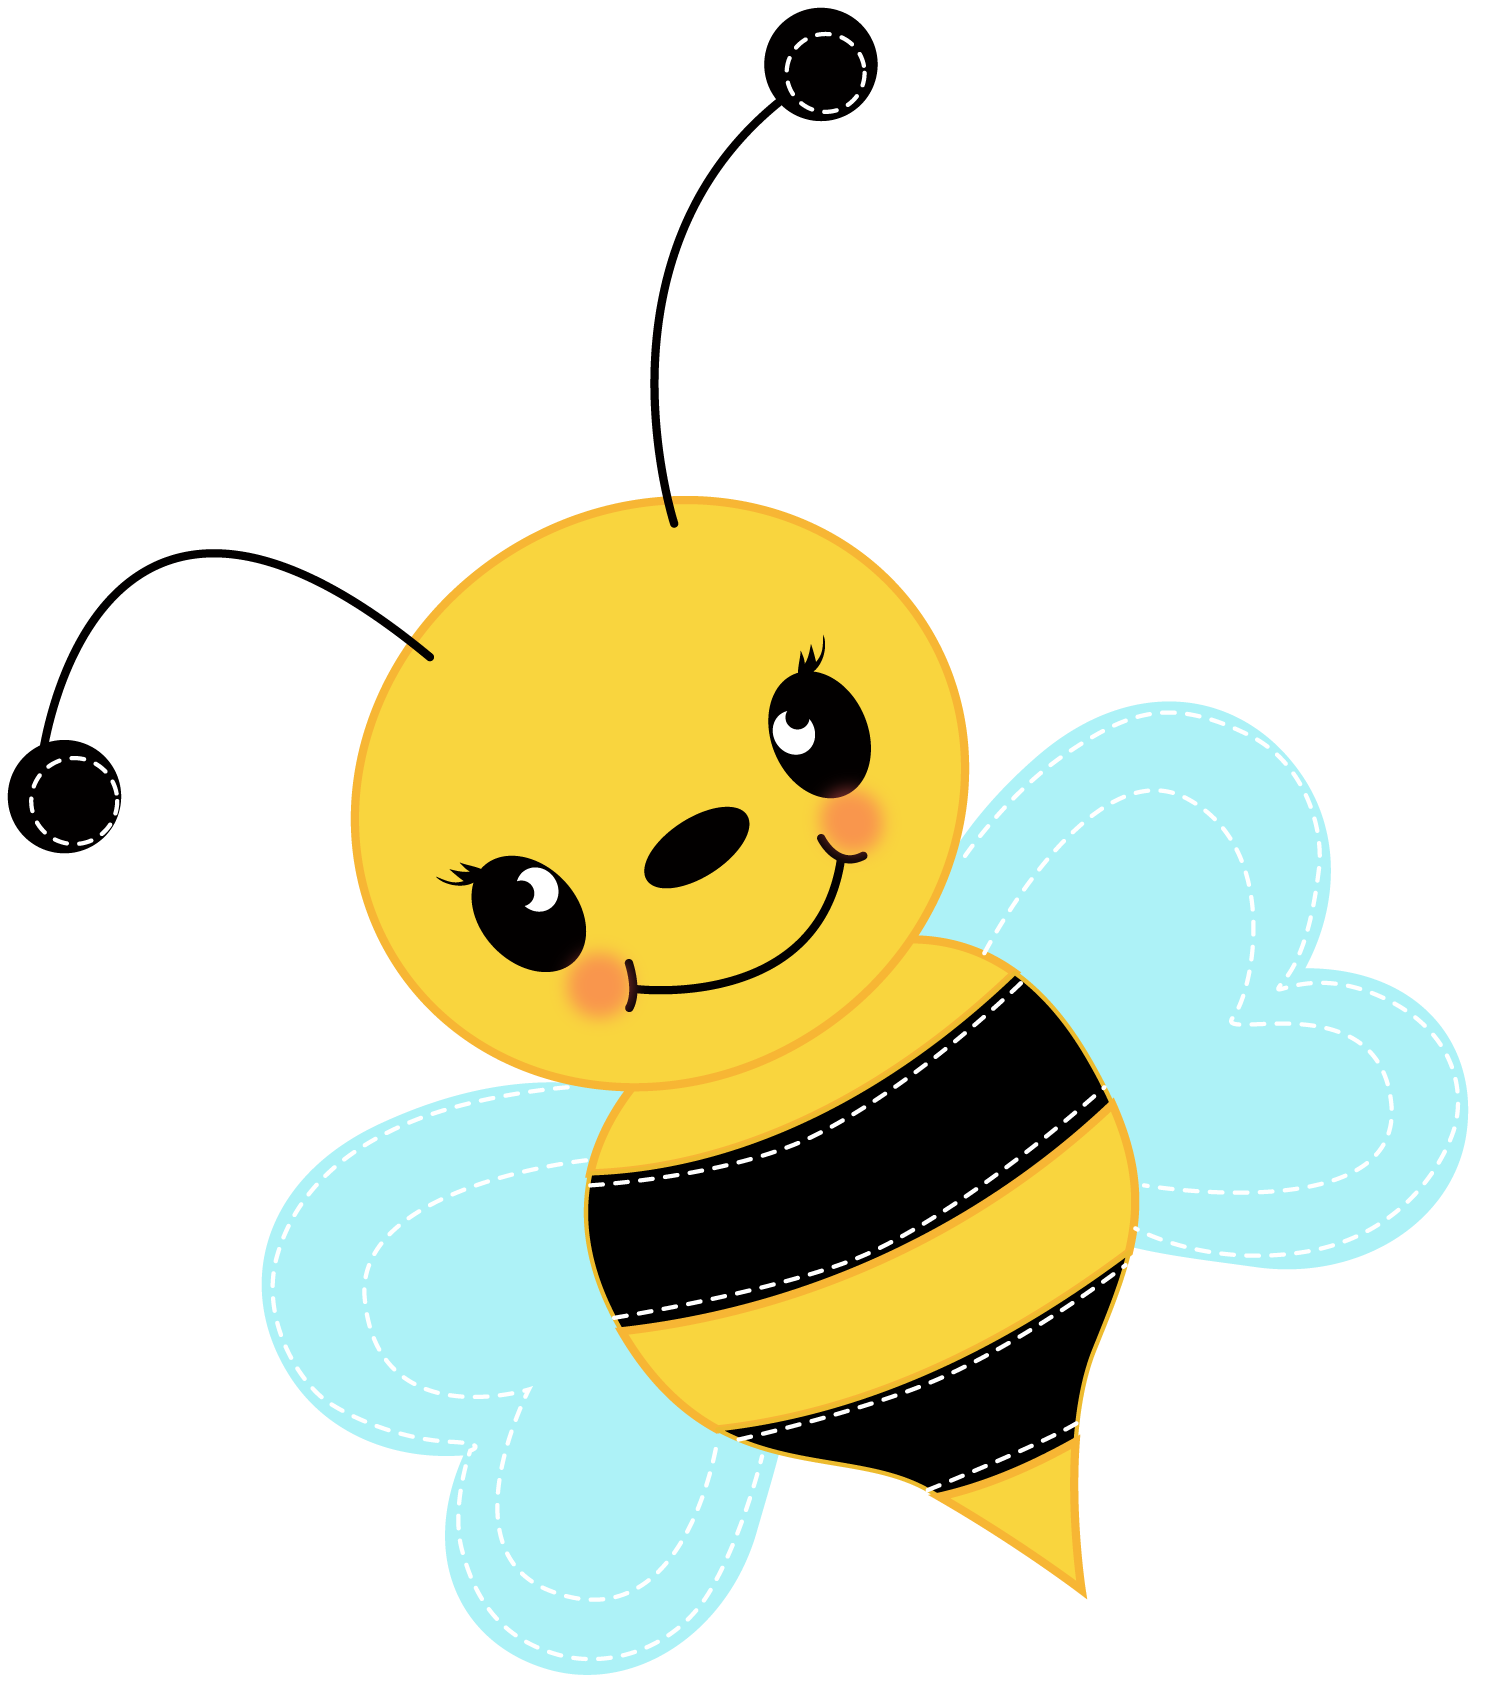 Free png clipart. Bumble bee busy images